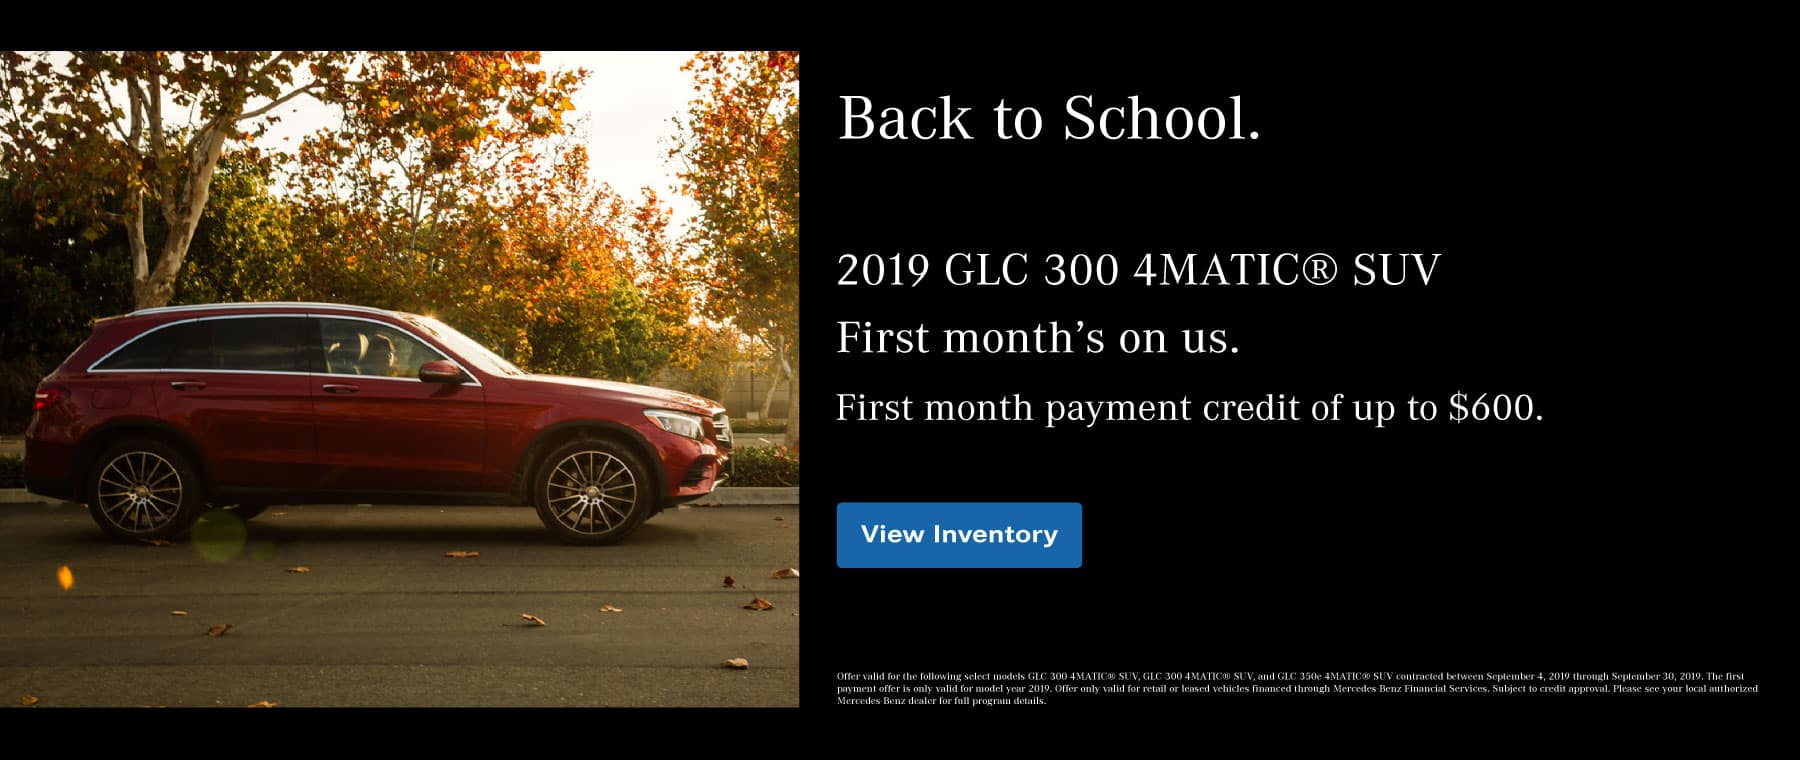 GLC First Month Payment